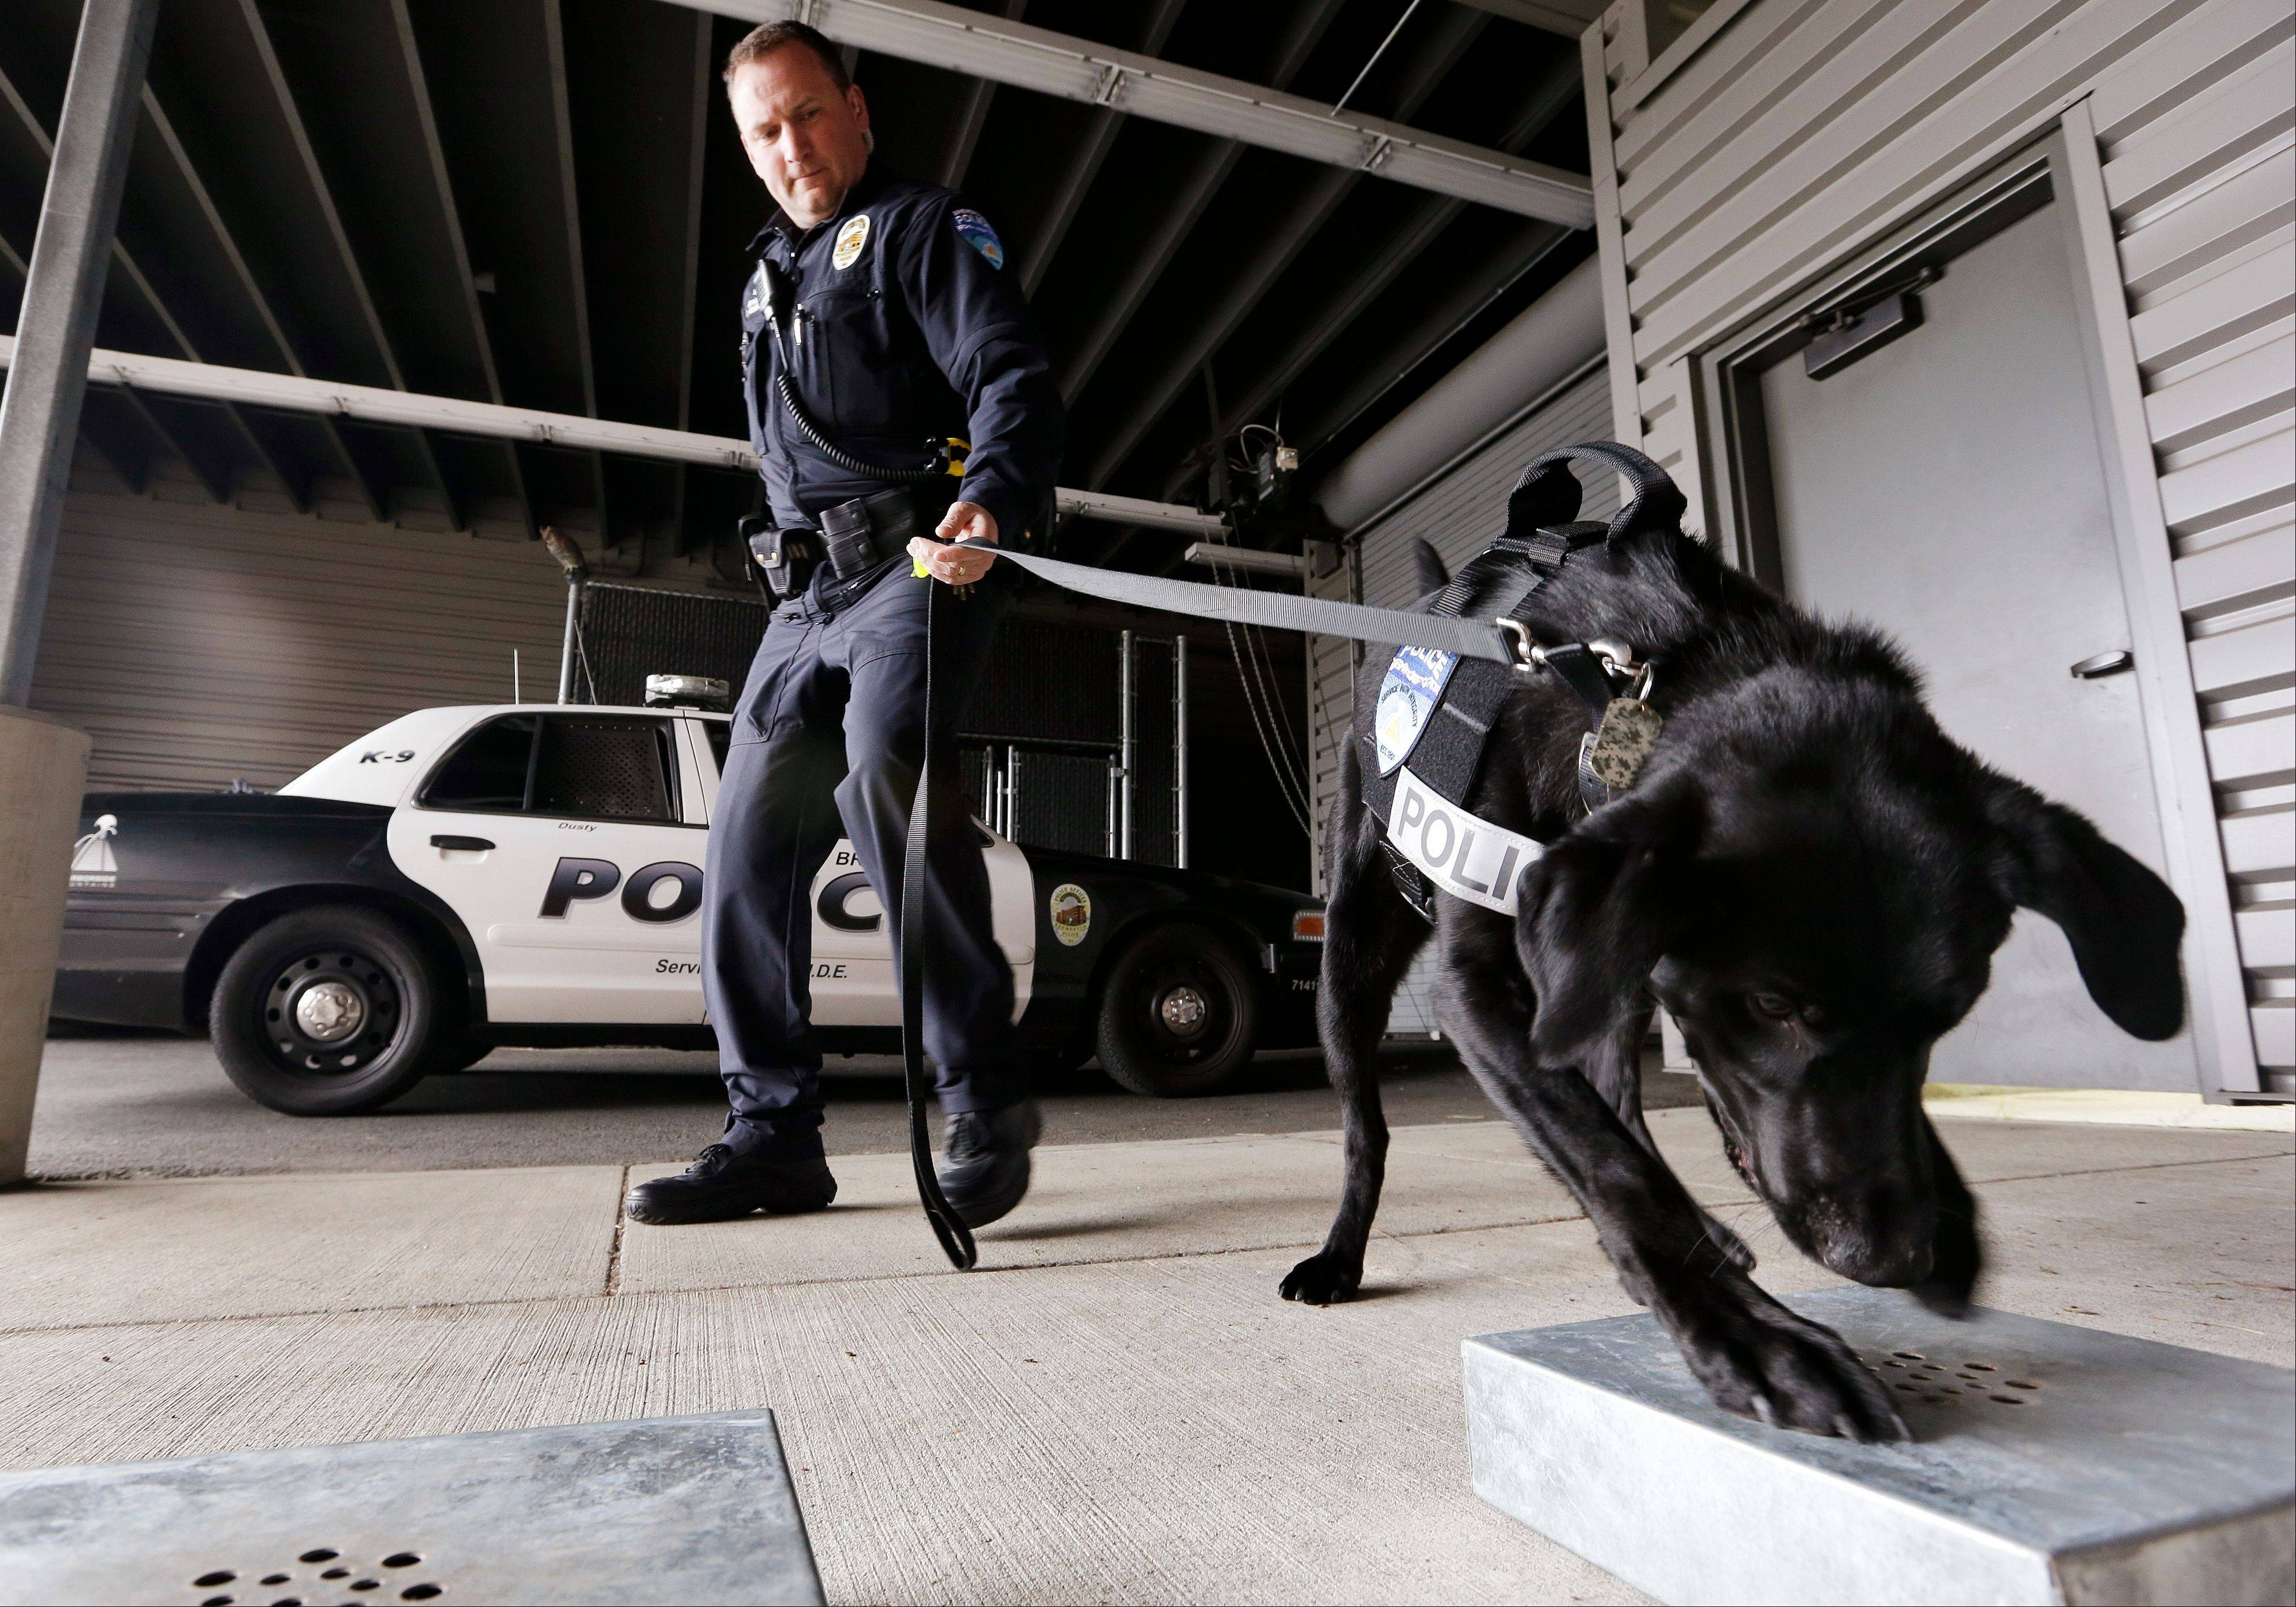 Associated Press Drug-sniffing police dog Dusty is watched by handler Officer Duke Roessel Thursday as the K-9 begins to dig at a box after successfully locating a stash of heroin during a training session at the police station in Bremerton, Wash.